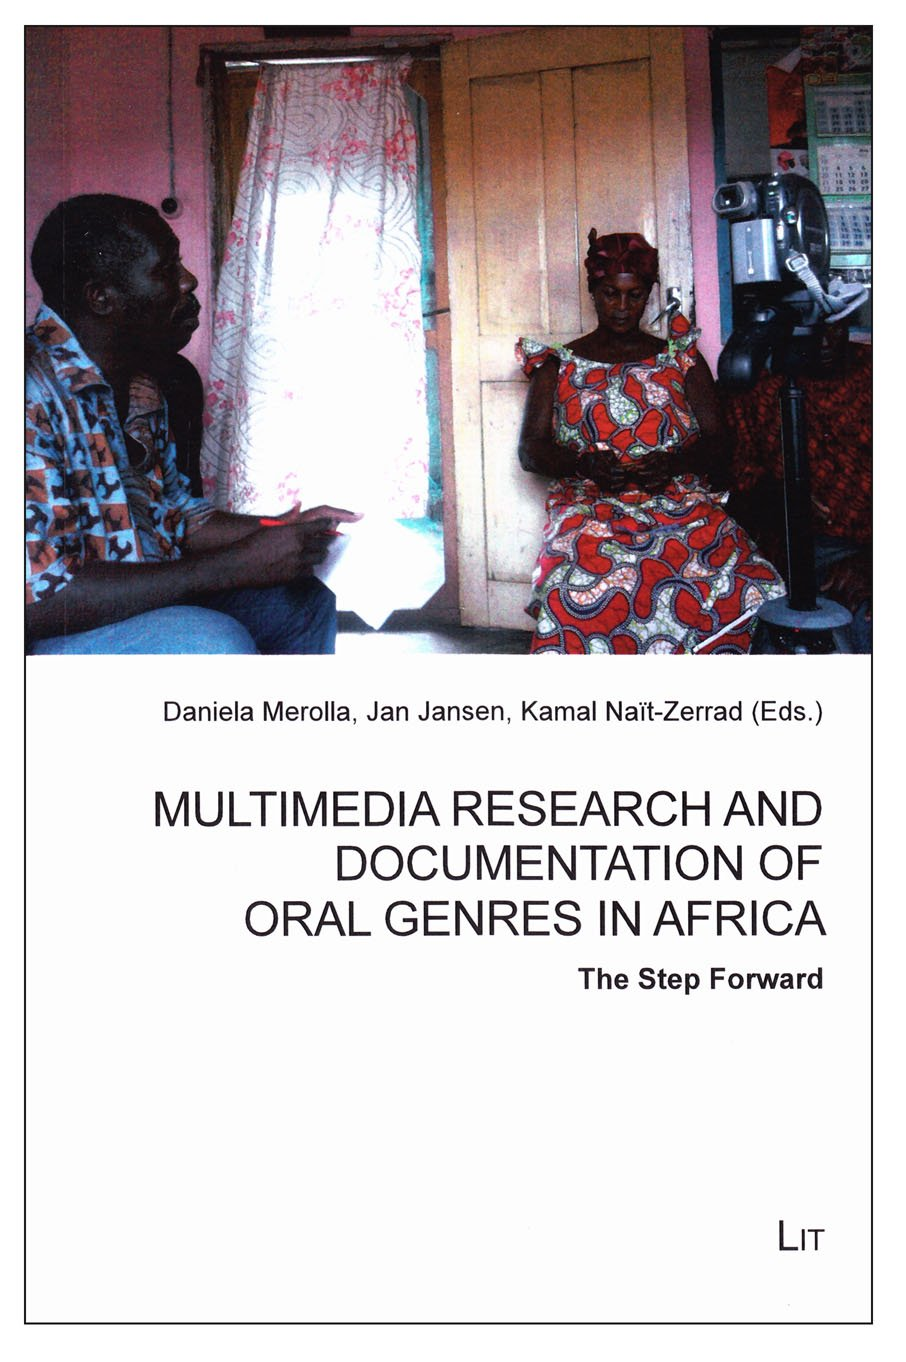 Multimedia Research and Documentation of Oral Genres in Africa